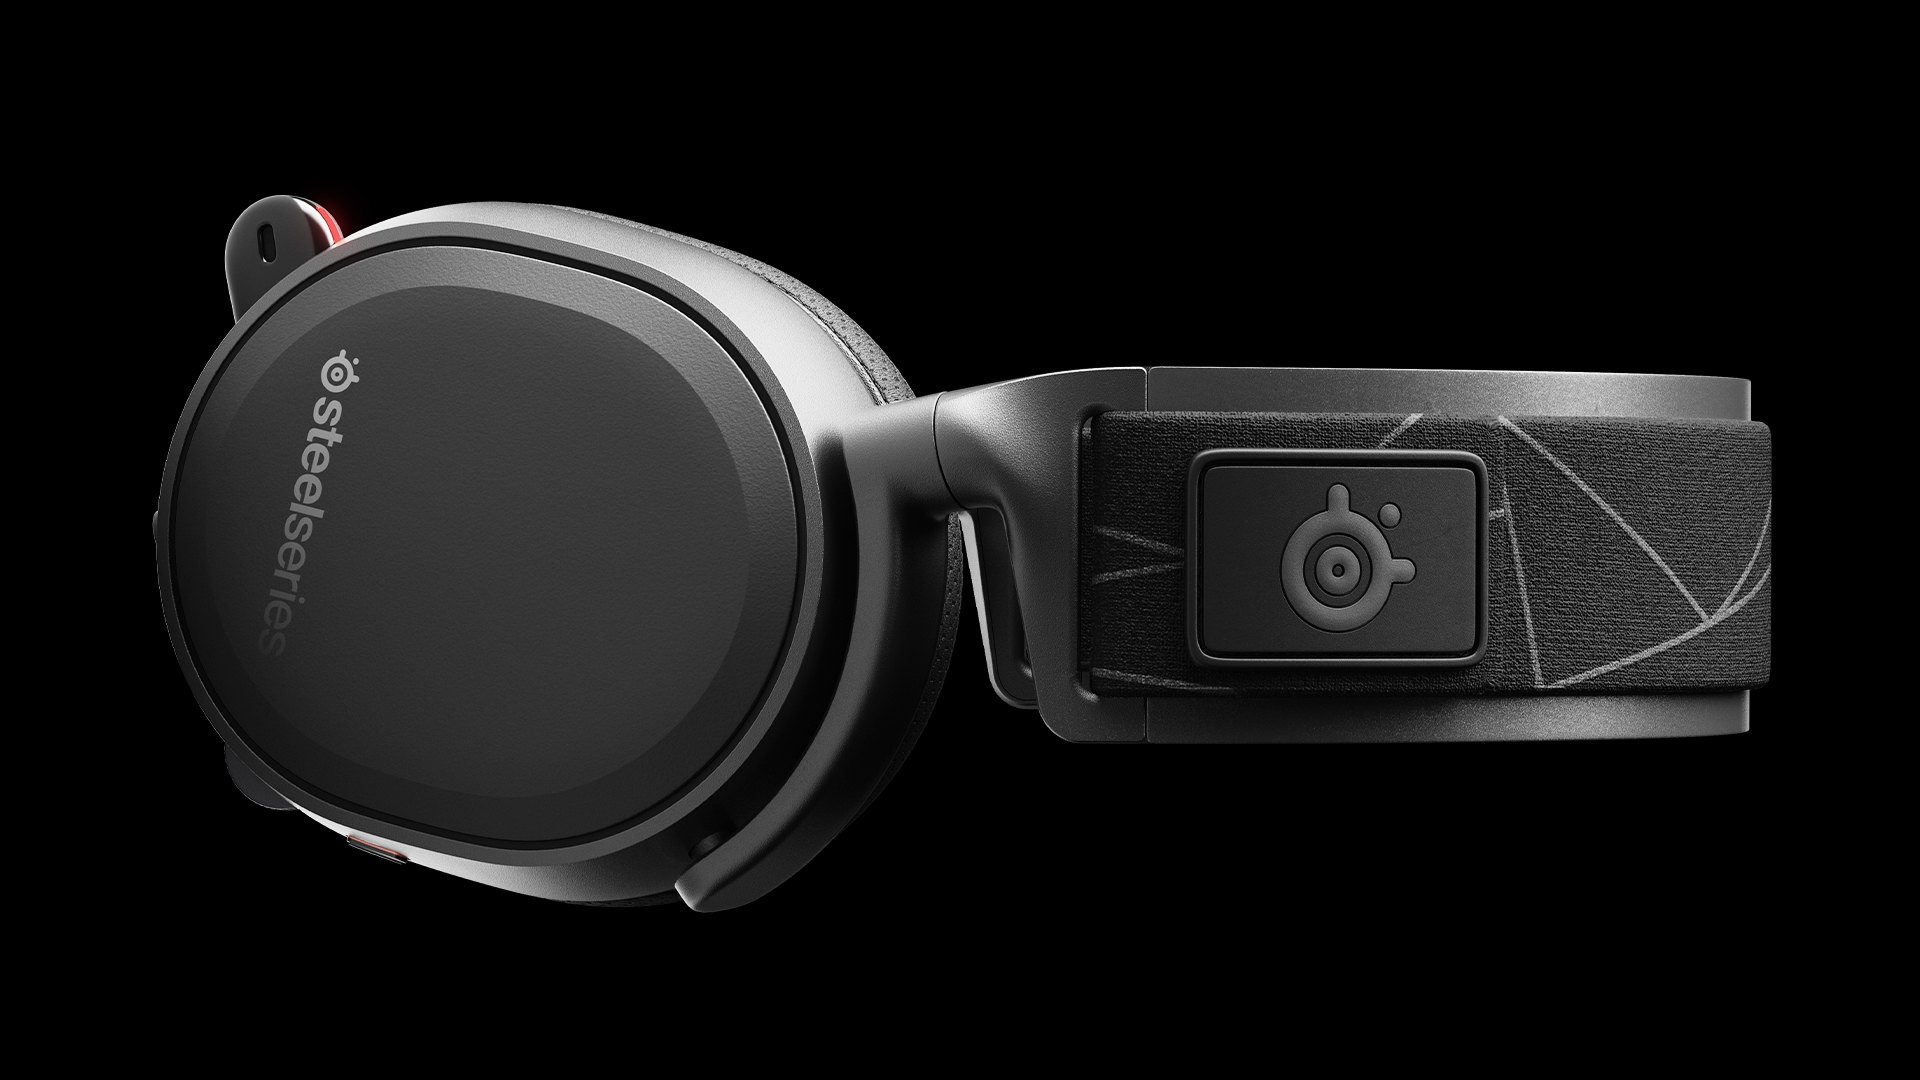 Arctis headset horizontally from close view